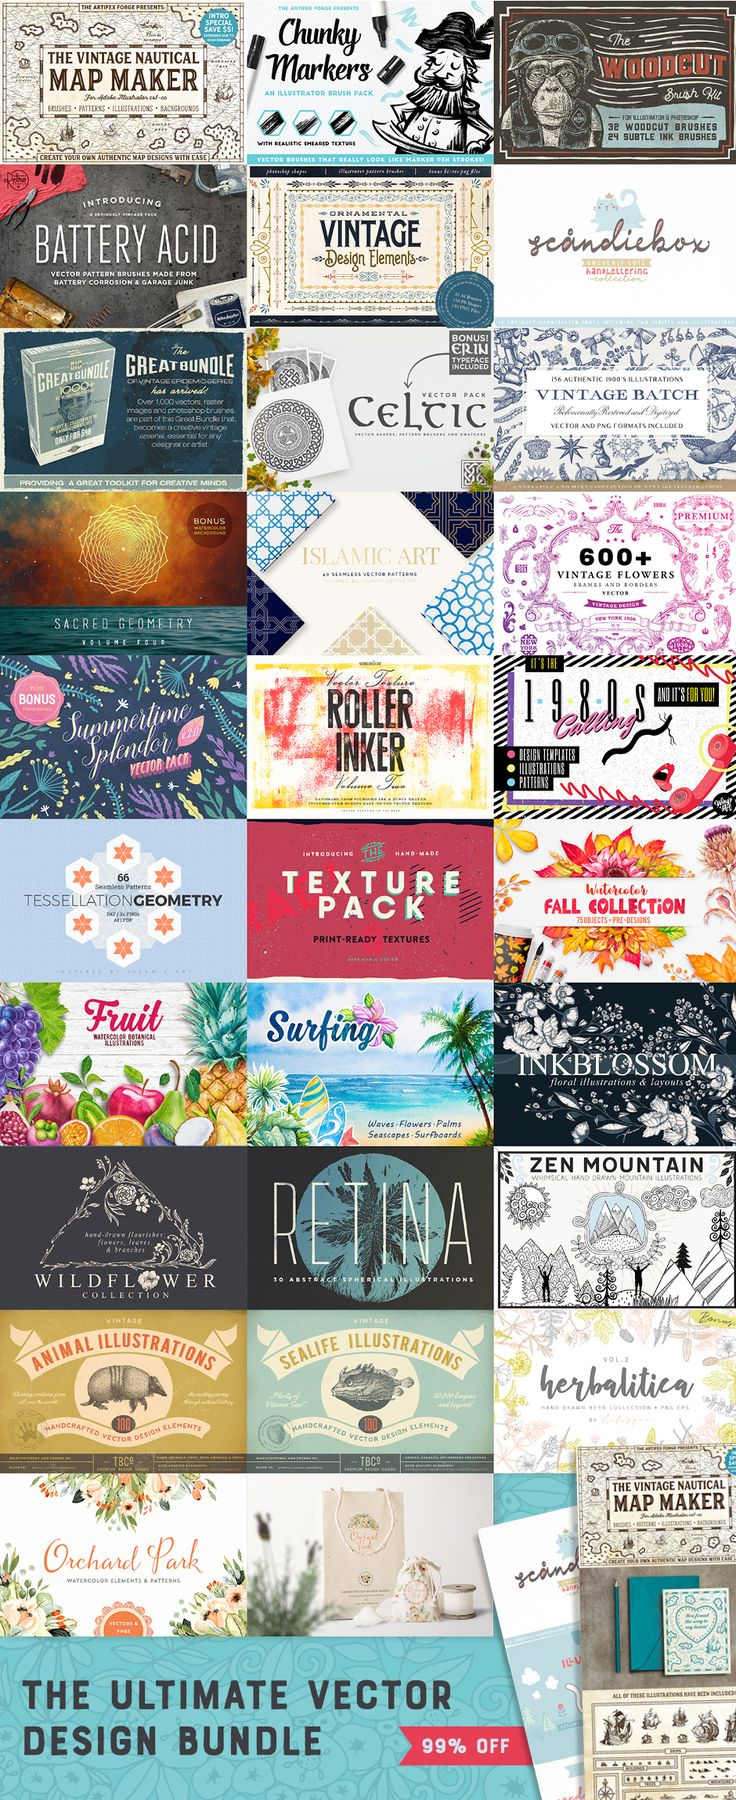 The Creative Designer's Colossal Treasure Chest ~ The Ultimate Vector Design Bundle. 1000s of Quality Vectors, Endless Creative Possibilities. 1000s of Quality Vectors, Endless Creative Possibilities. 99% Off For a Limited Time.This bundle is the ultimate toolkit to kickstart your creativity. It's packed full with tons of best-selling vector design assets, based on our community's most requested items.